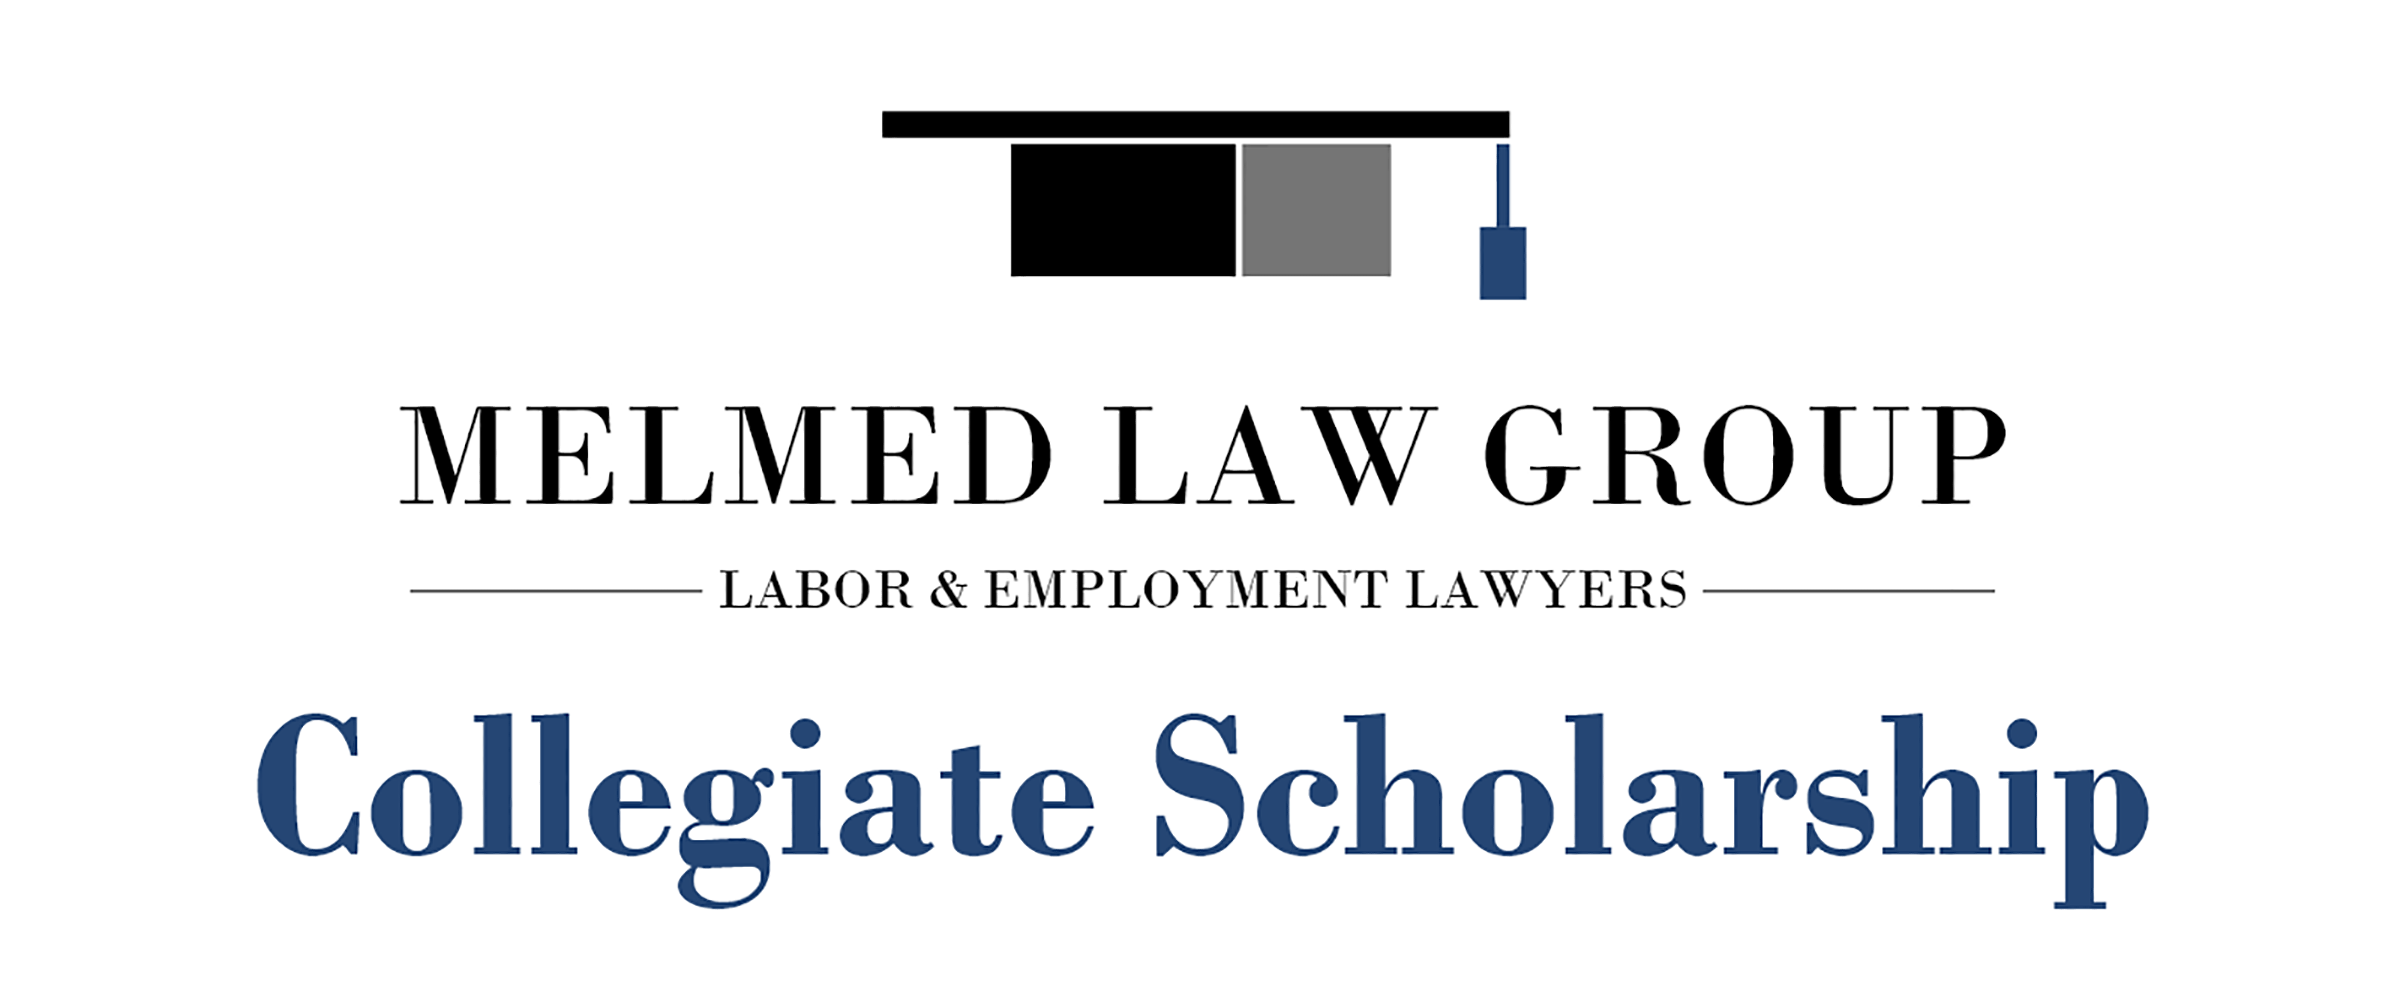 Melmed law group collegiate scholarship